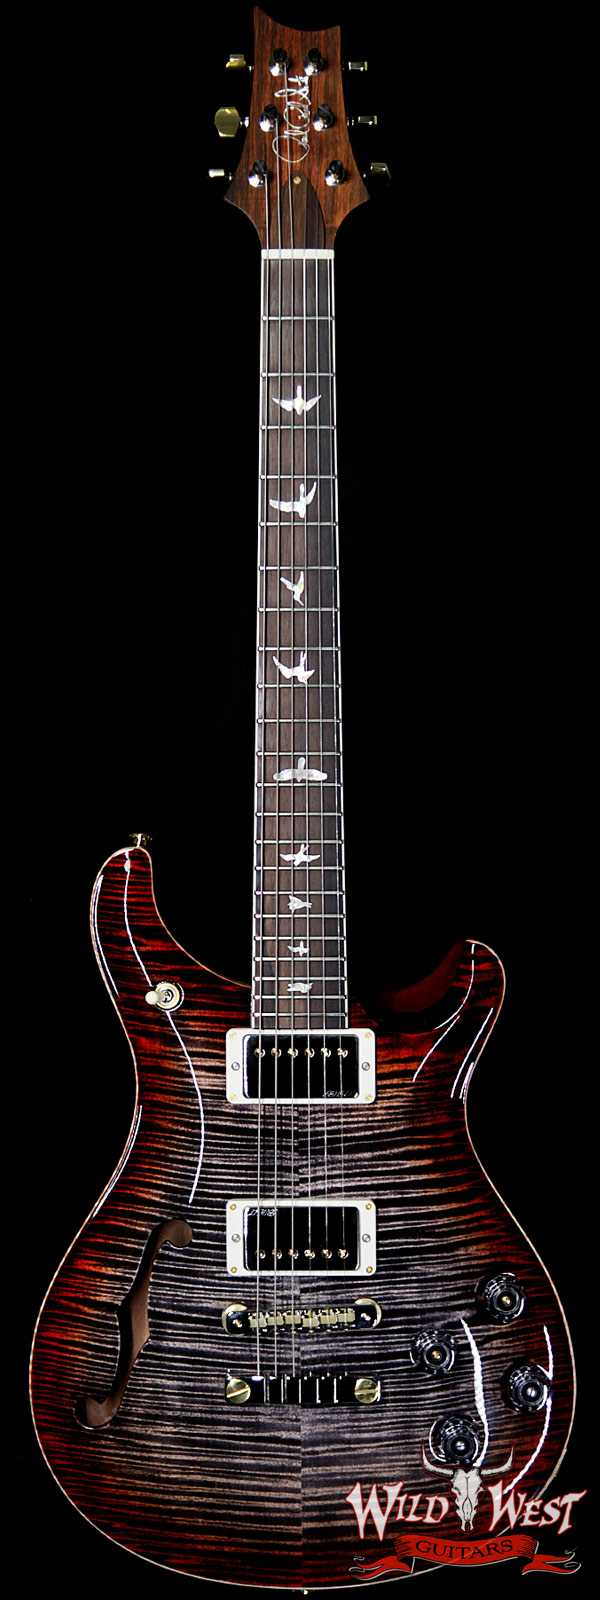 PRS Wild West Guitars 20th Anniversary Limited Run # 23 of 40 Wood Library Artist Package Semi-Hollow McCarty 594 Charcoal Cherry Burst